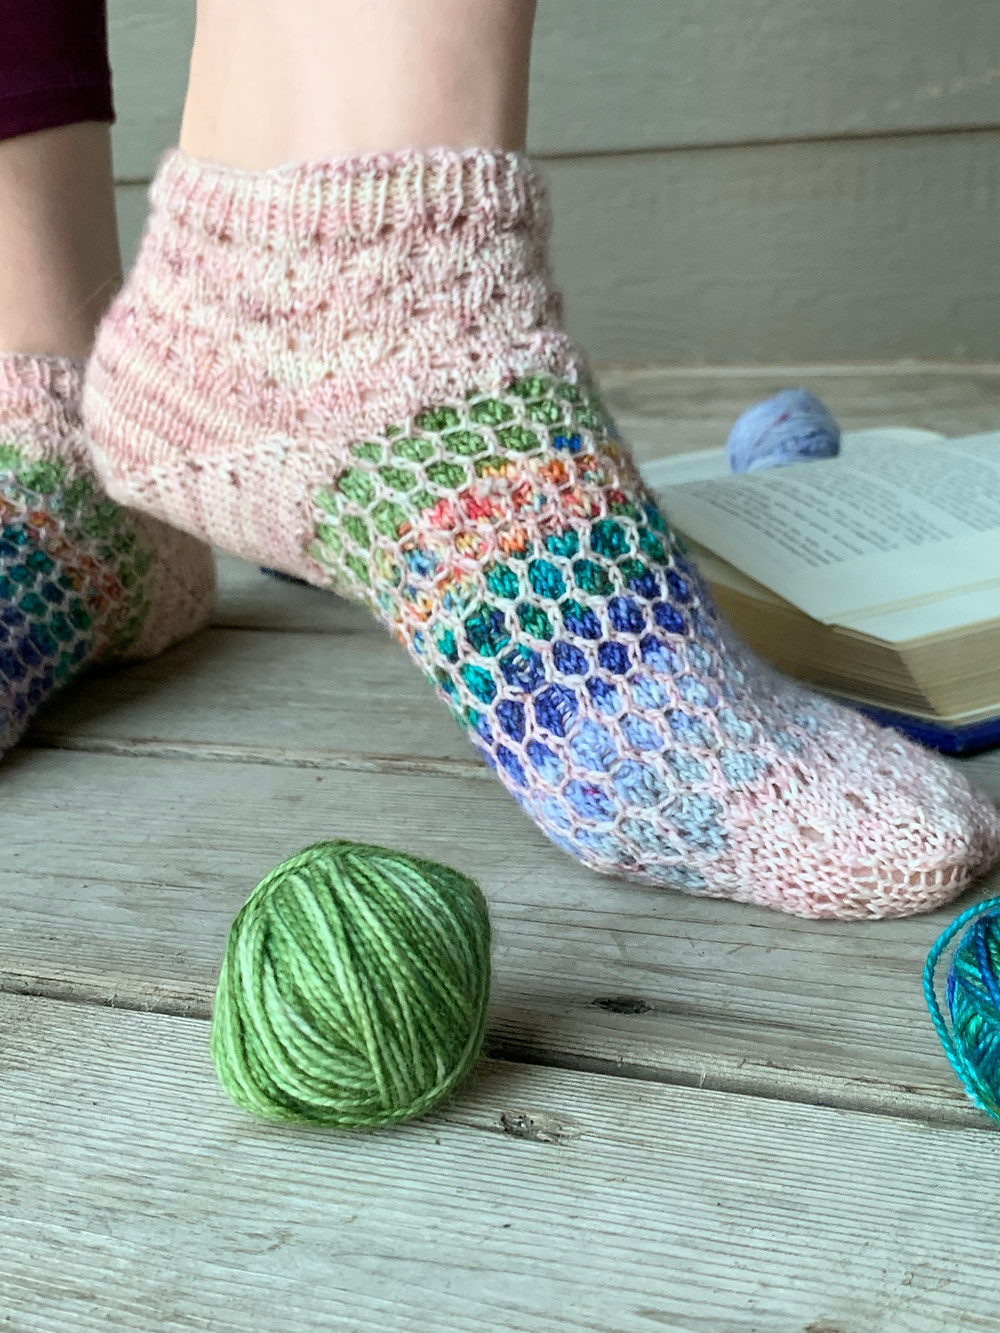 The Adventure Anklets knitting pattern, eyelet lace and mosaic knitted socks that utilize fingering weight yarn and mini skeins